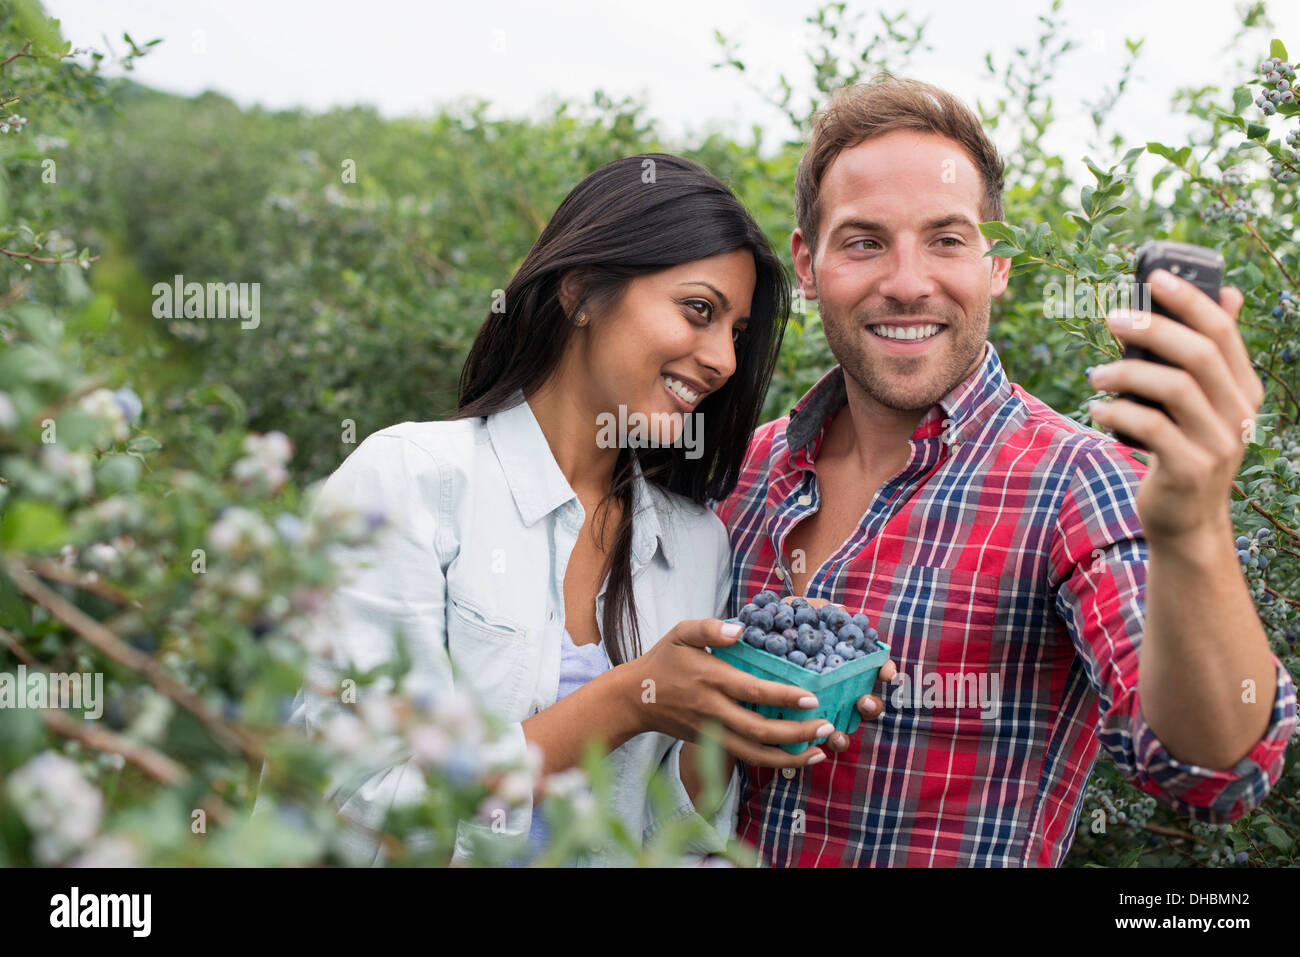 Blueberry plants bearing fruit. Two people among the bushes, taking a selfy with a smart phone. - Stock Image